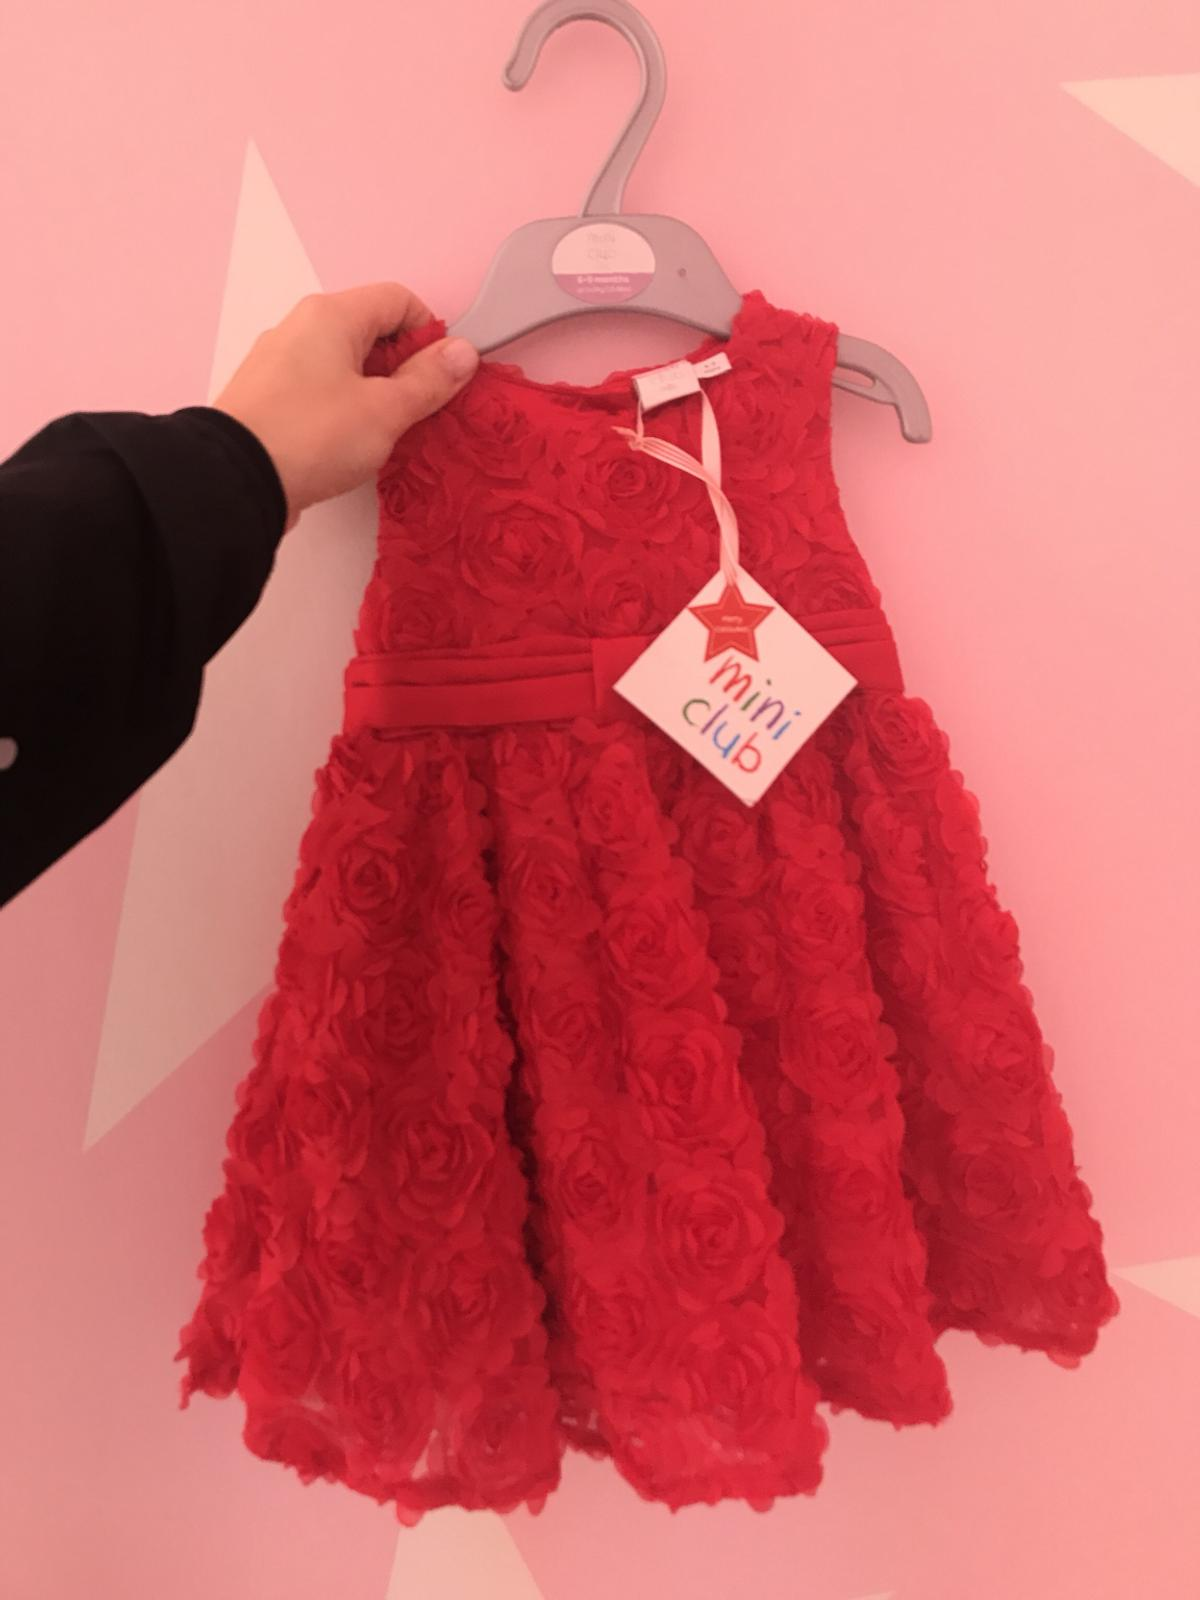 Red Girls Dress Mini Club Brand In Dl1 Blackwell For 500 For